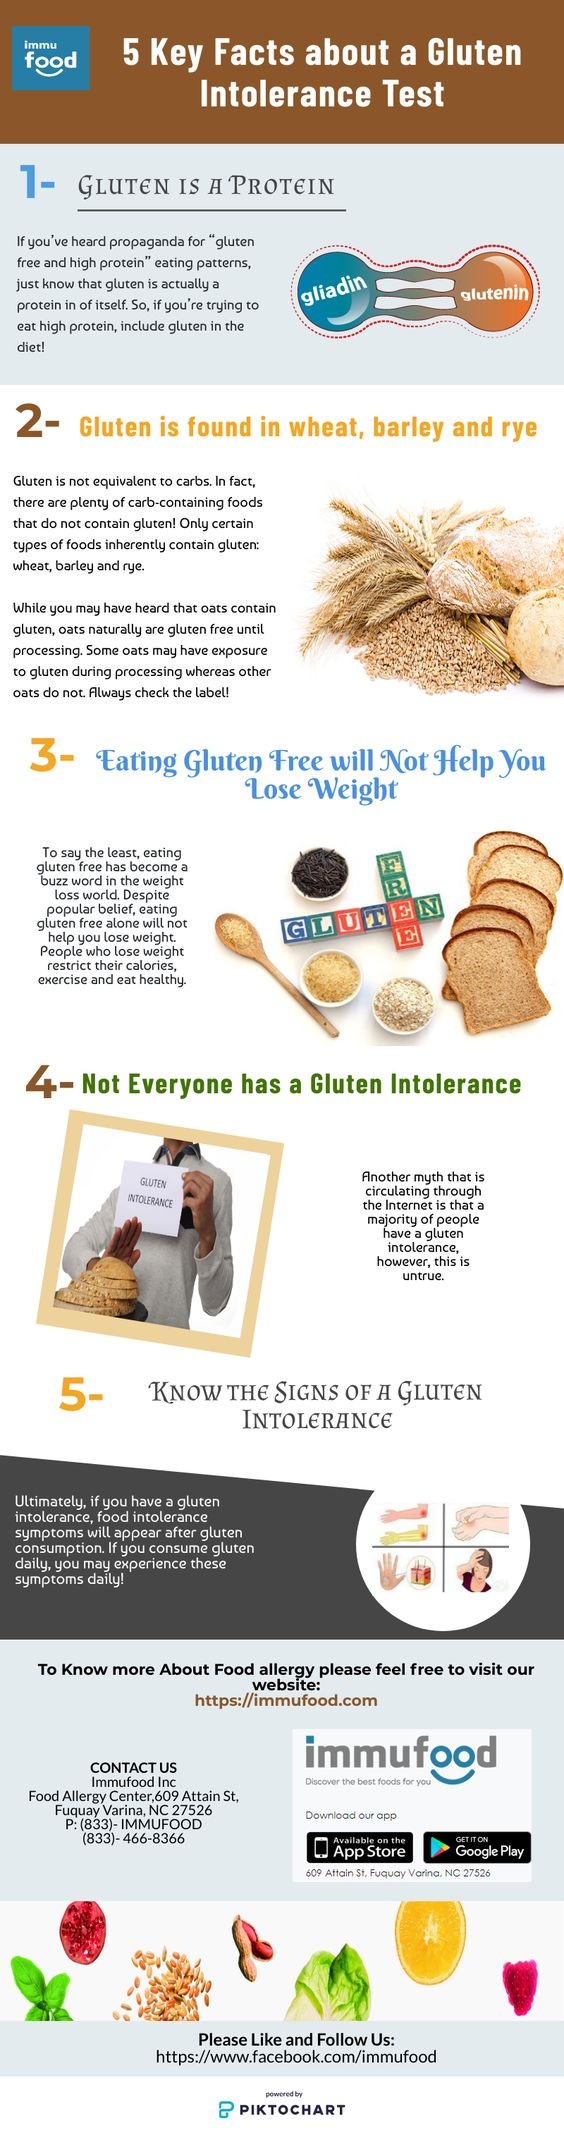 5 Key Facts about a Gluten Intolerance Test